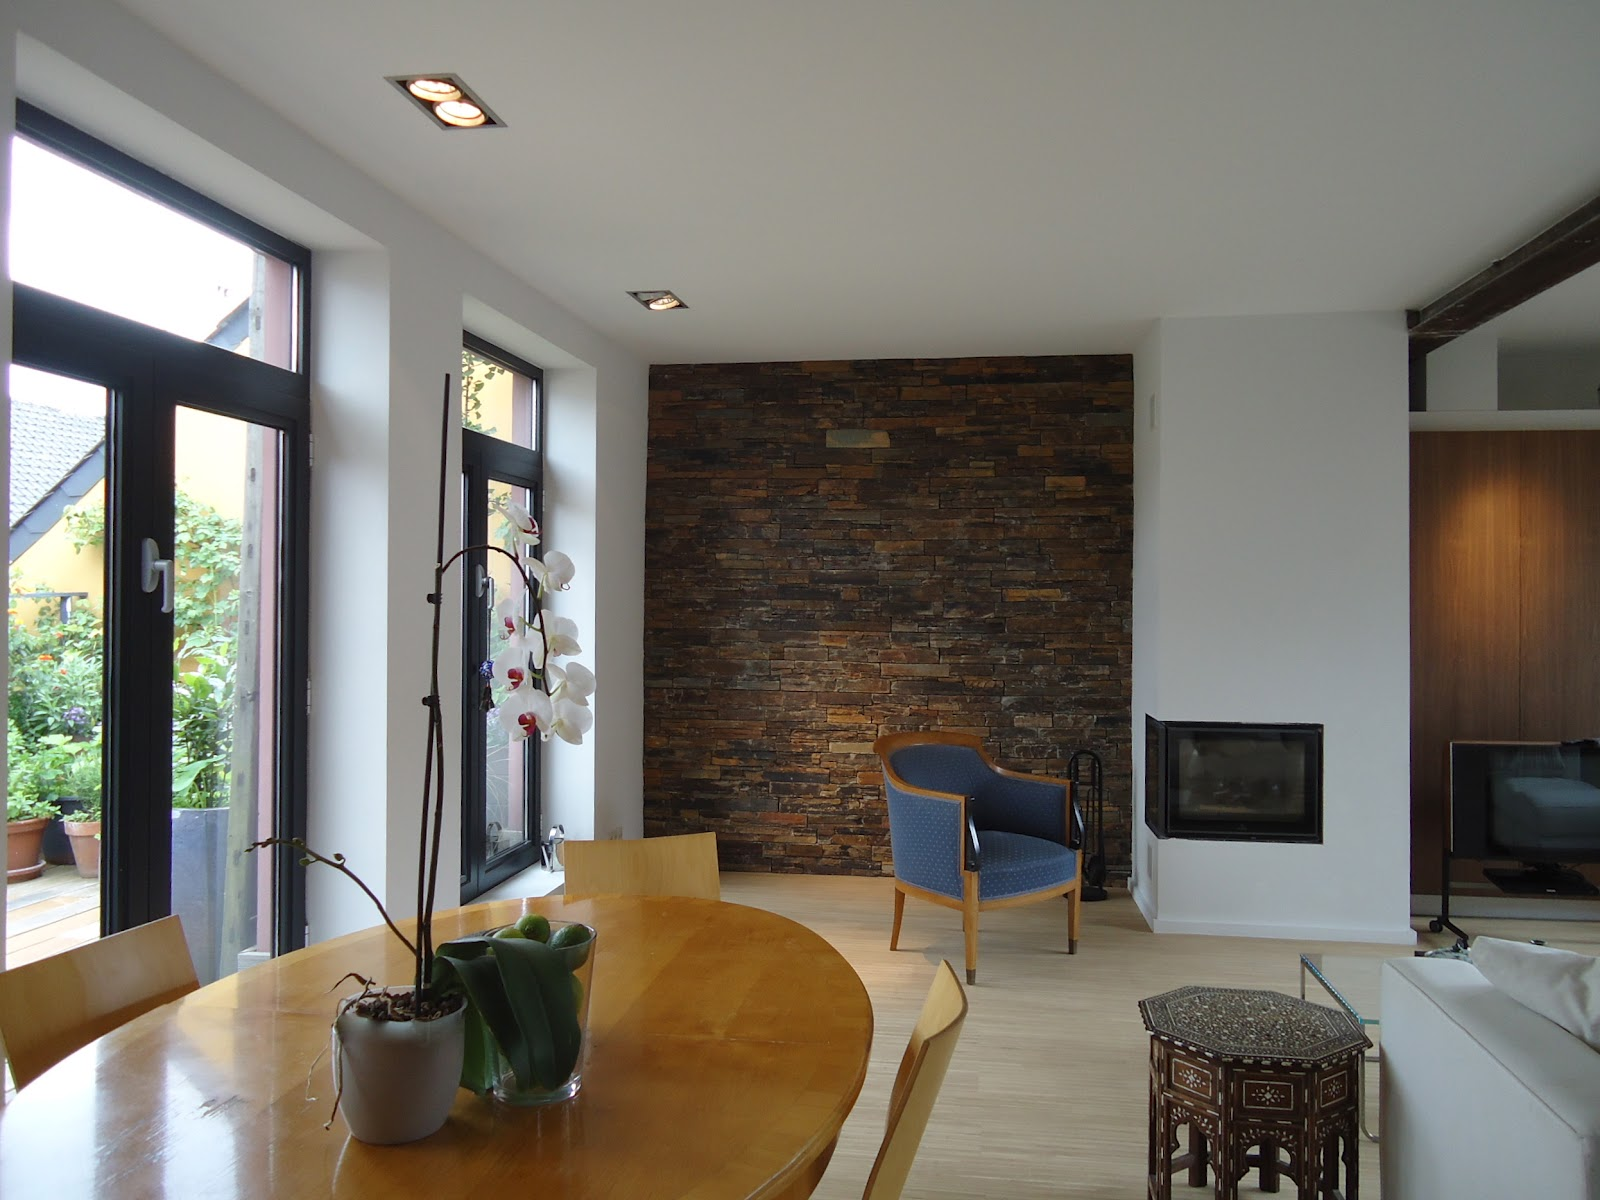 One Of The Three Squares Flint Stone Walls They Provide An Incredible Focal Point In Living Room Bathroom And Entrance